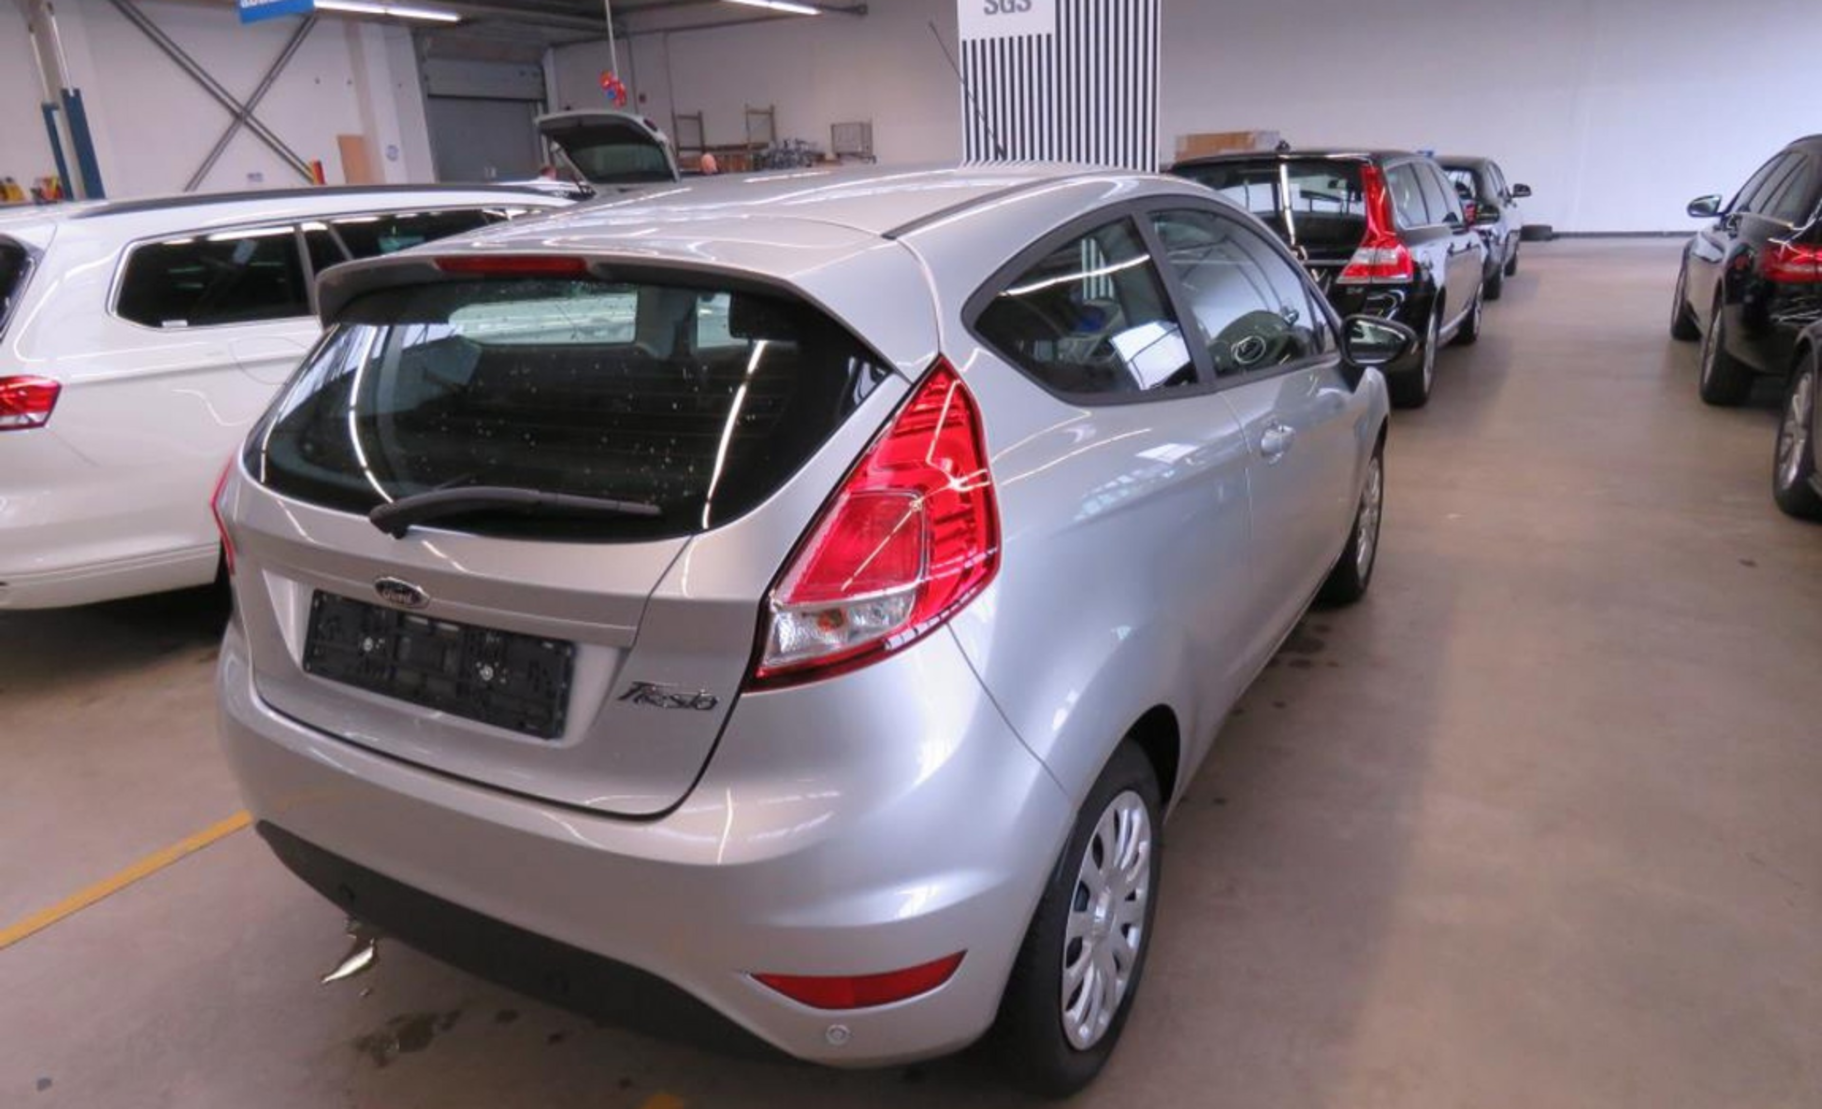 Ford Fiesta 1.0, SYNC Edition (621193) detail2